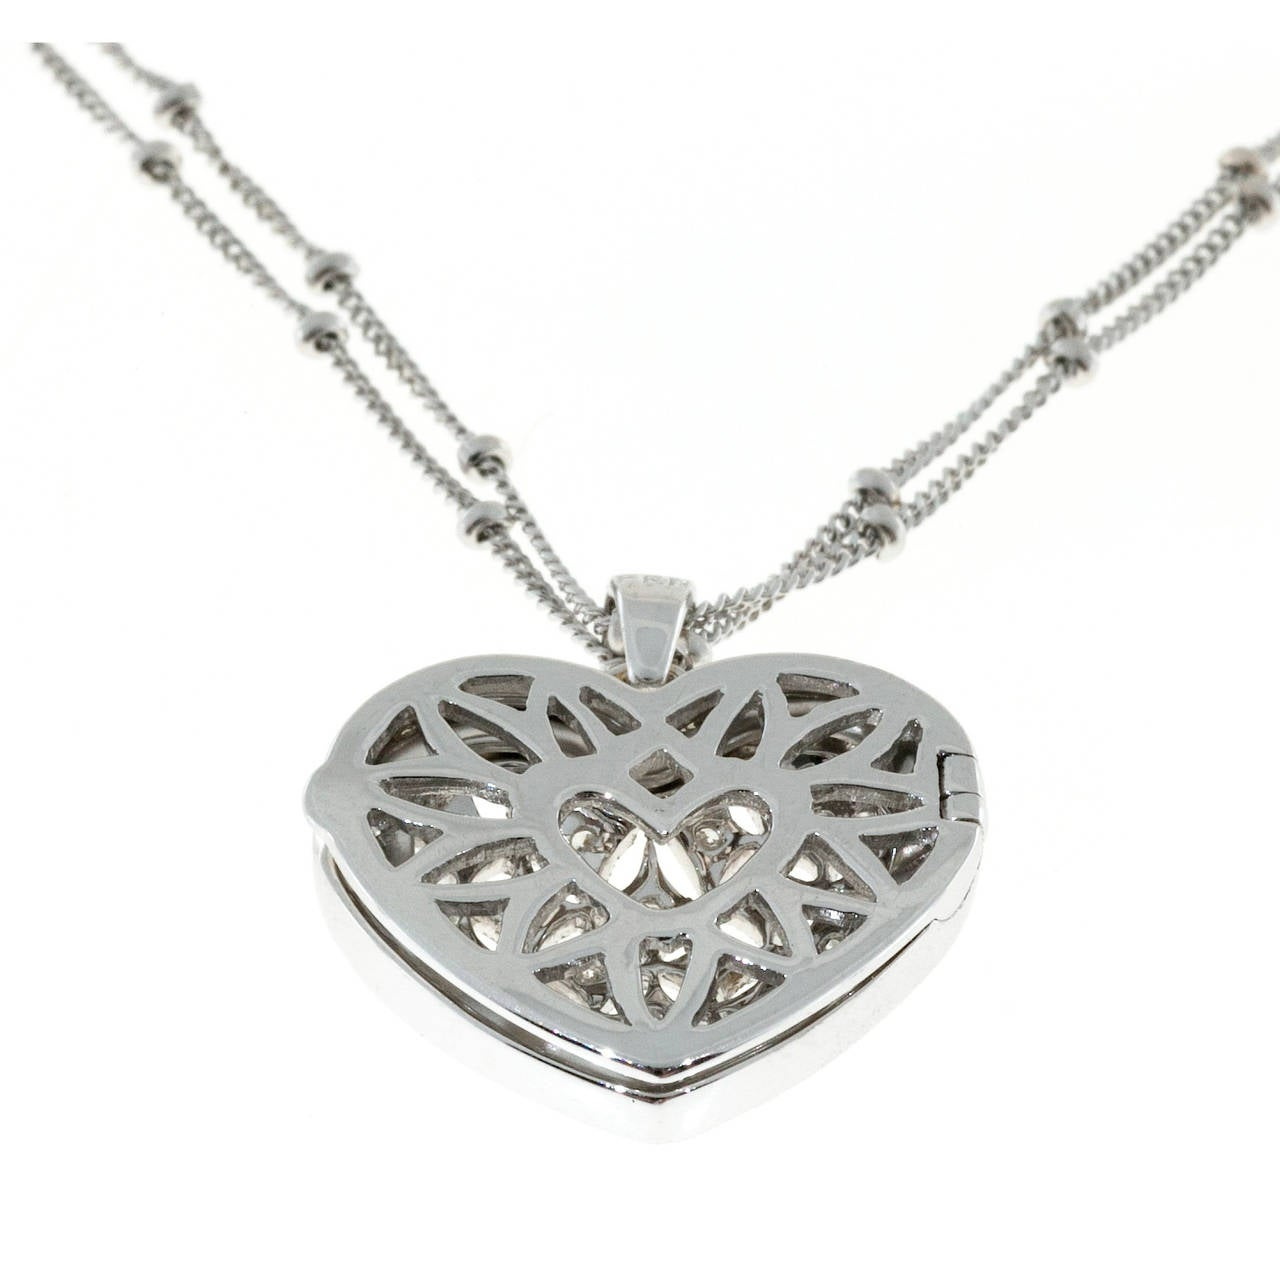 Diamond Gold Open Work Heart Locket Pendant Chain In Good Condition For Sale In Stamford, CT